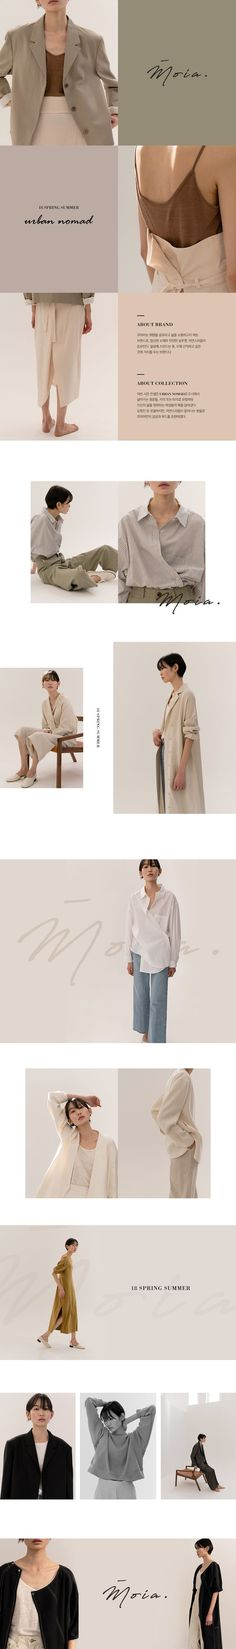 37276f77f864 Modern look book design and magazine style inspiration, simple hipster  graphic design with womens fashion